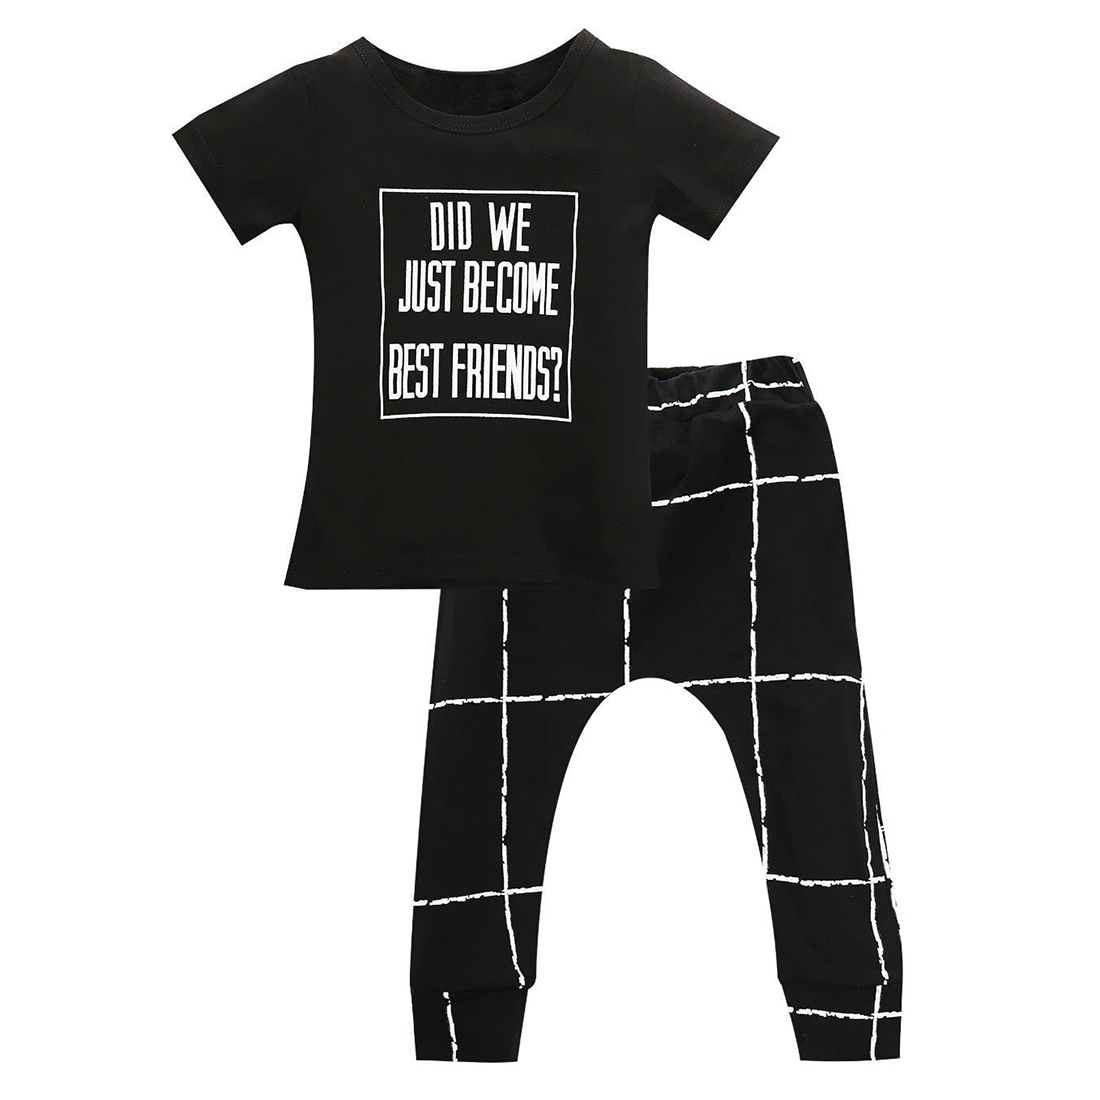 2PCS Infant Newborn Baby Boys Clothes T-shirt Pants Outfits set , Black , 0-6 Months